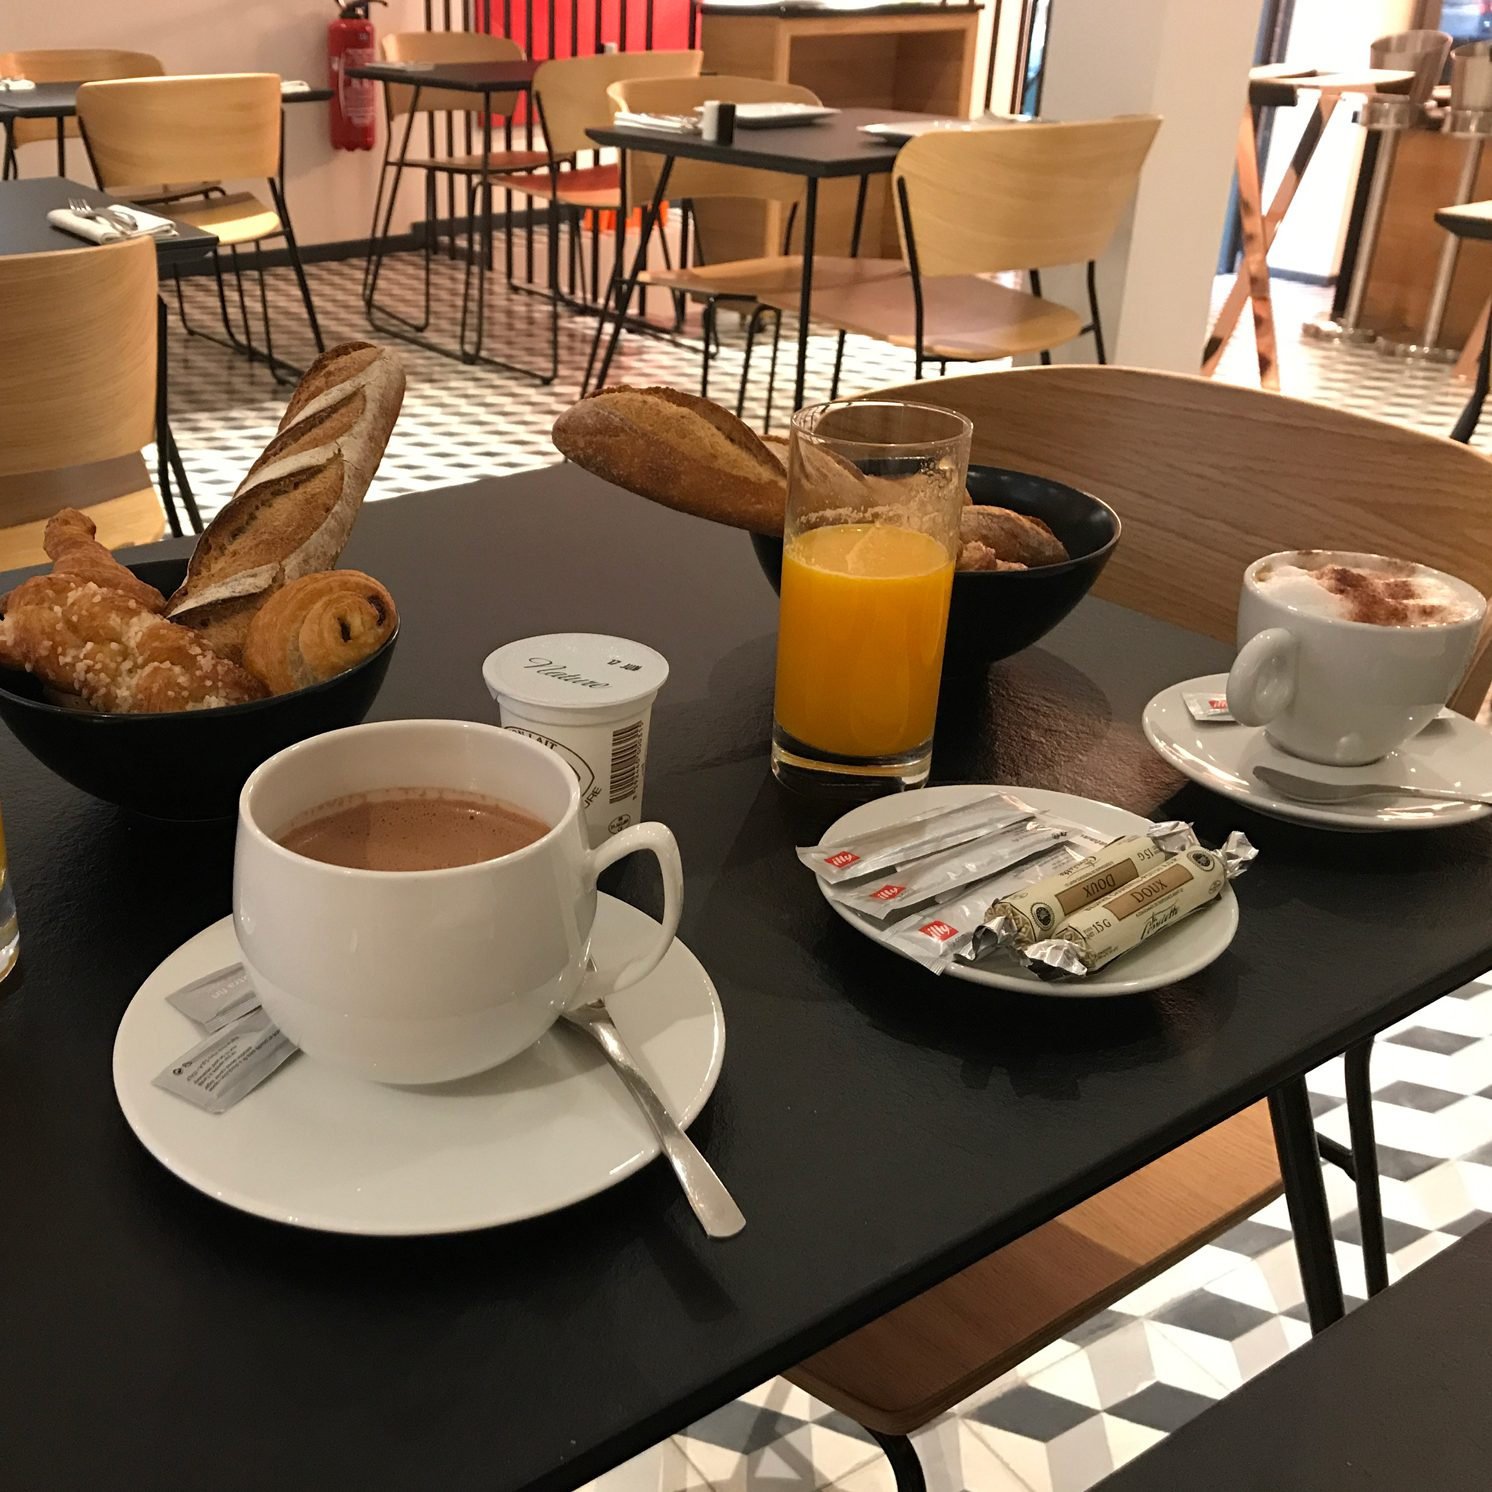 breakfast at sixty two restaurant in villa du taur in toulouse